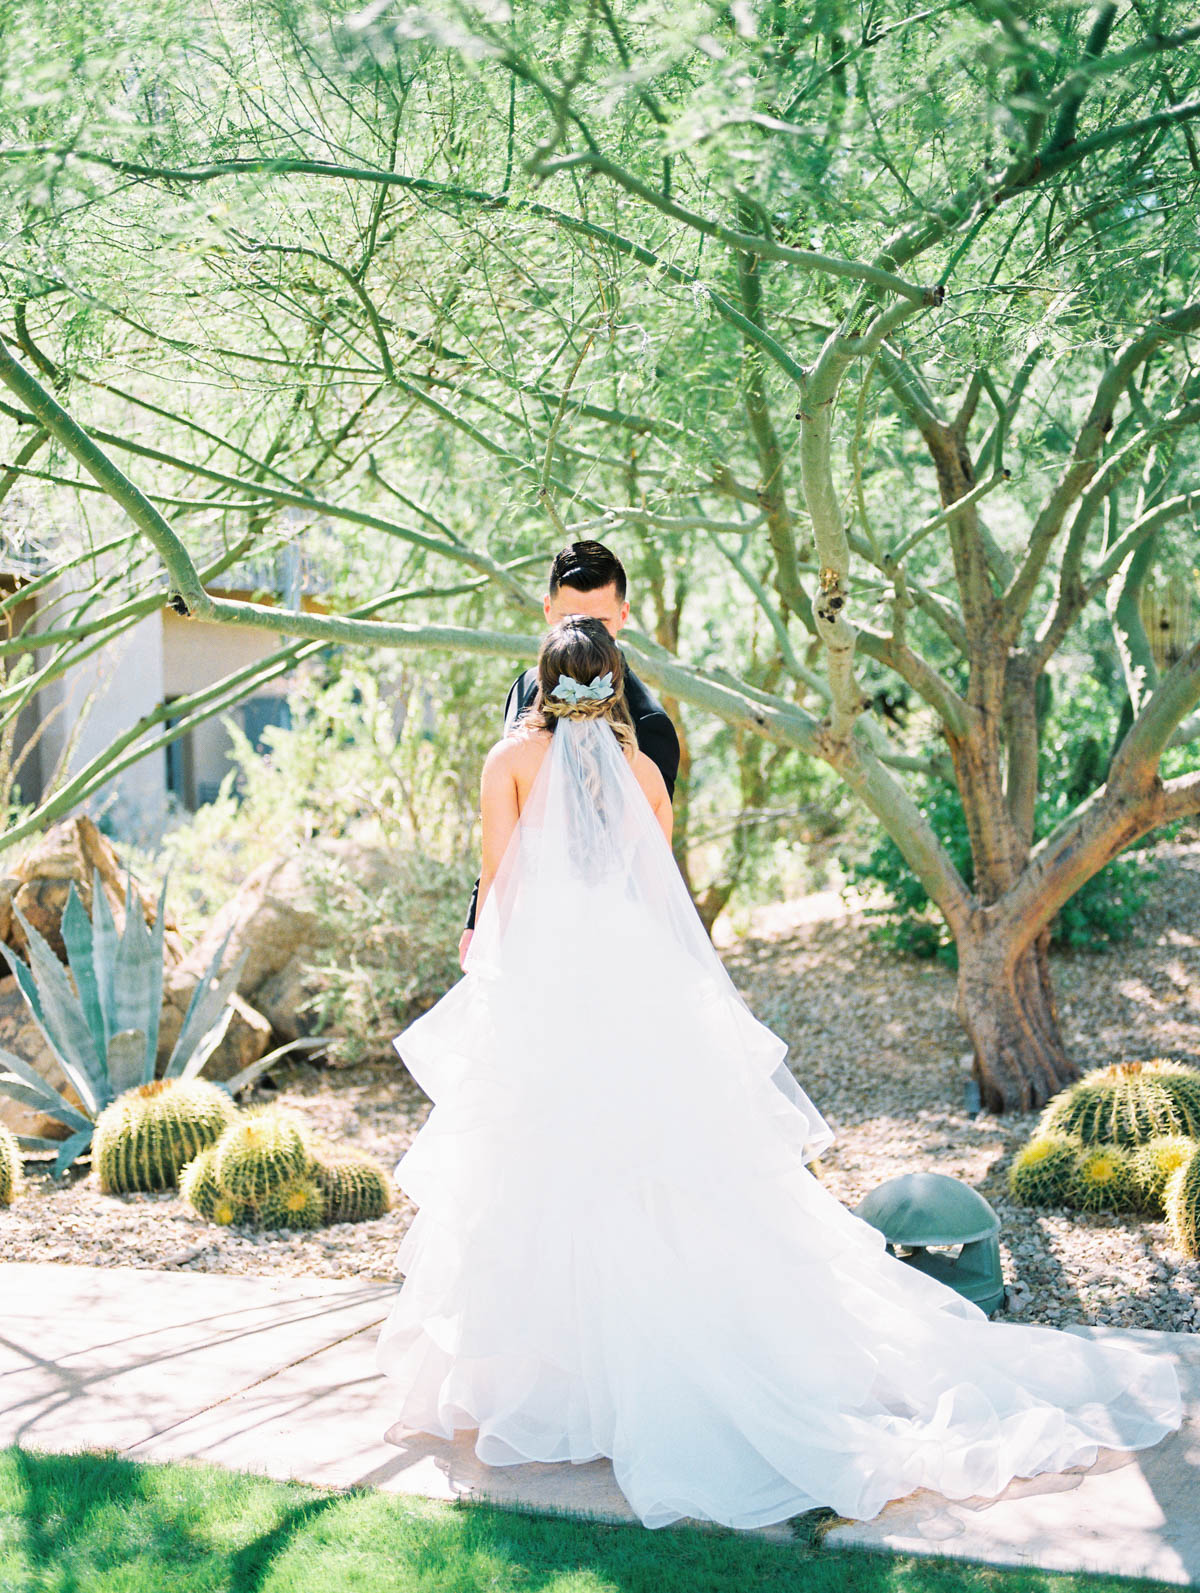 JW Marriott wedding captured by Tucson Wedding Photographers Betsy & John